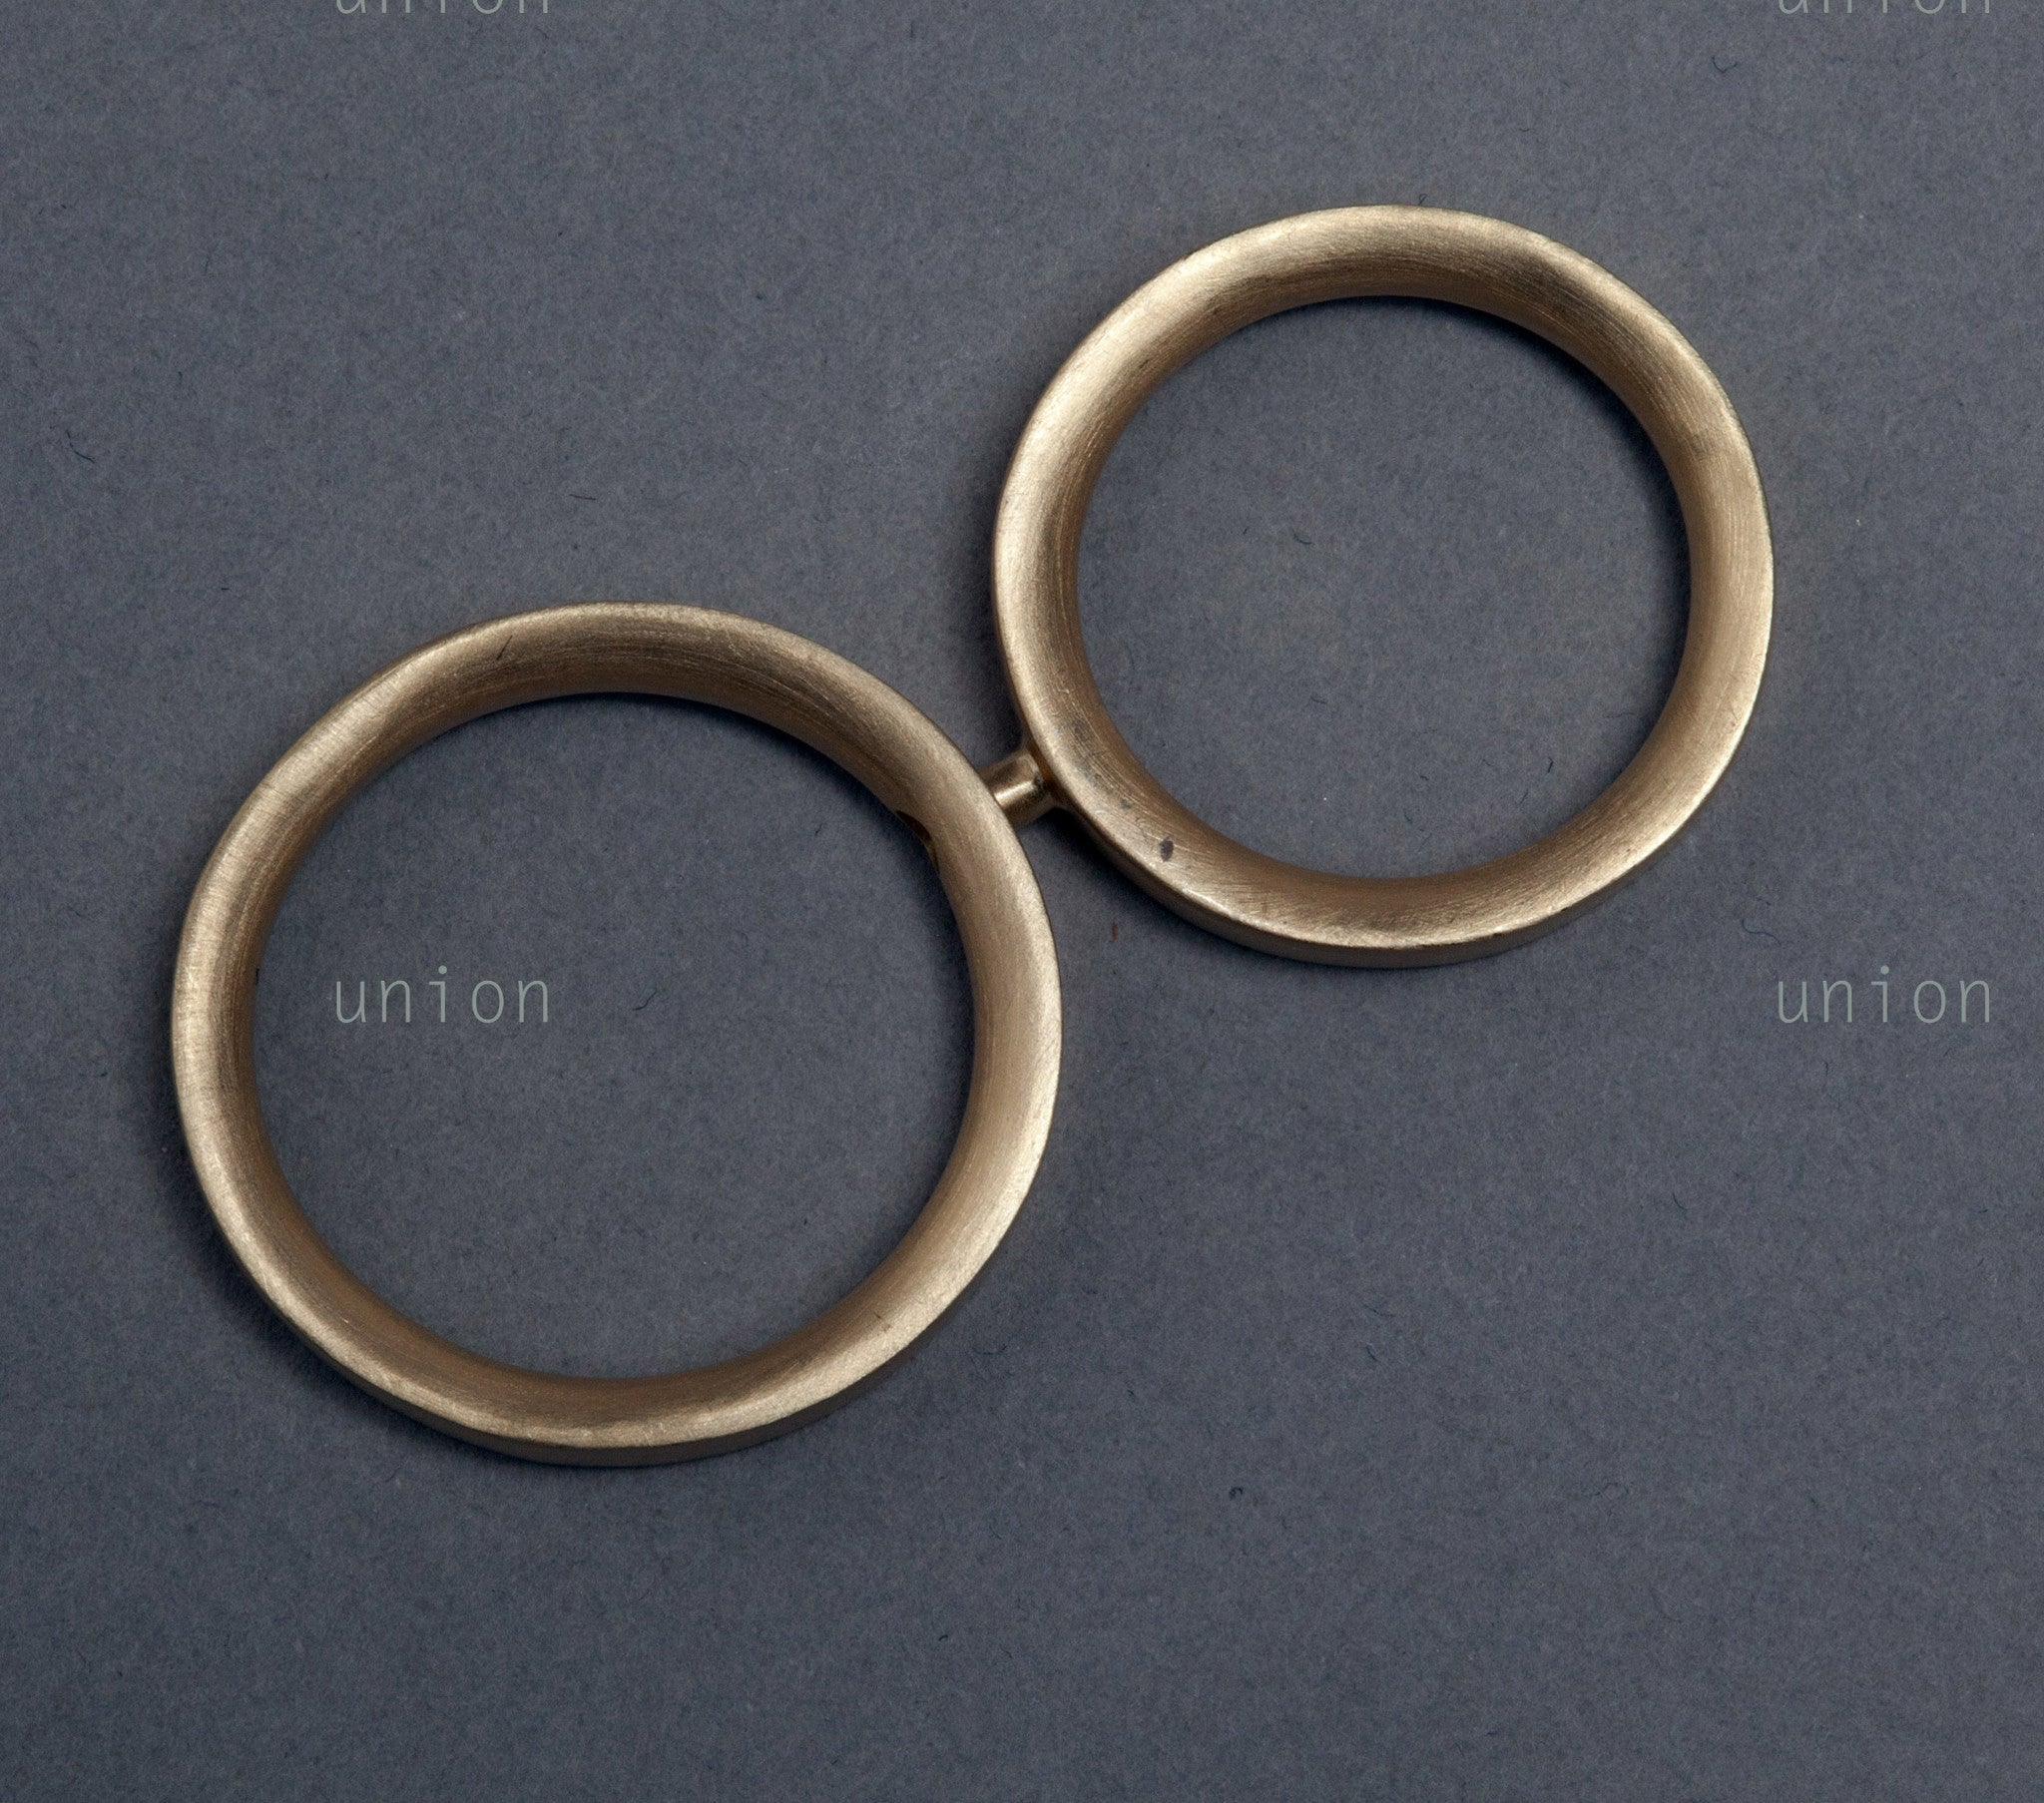 Union wedding rings